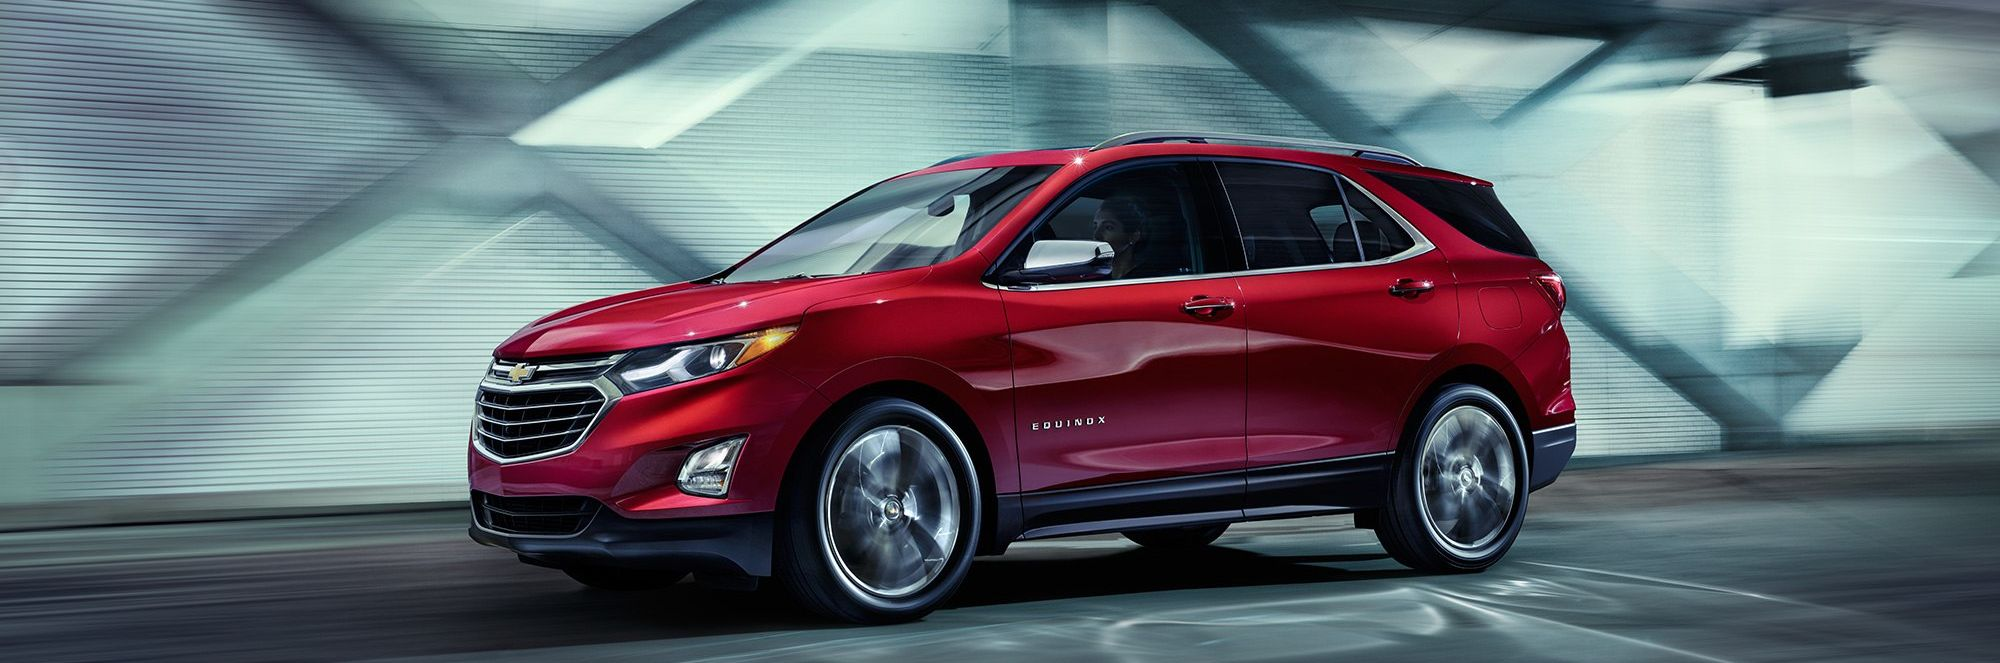 2019 Chevrolet Equinox Leasing near Clinton Township, MI